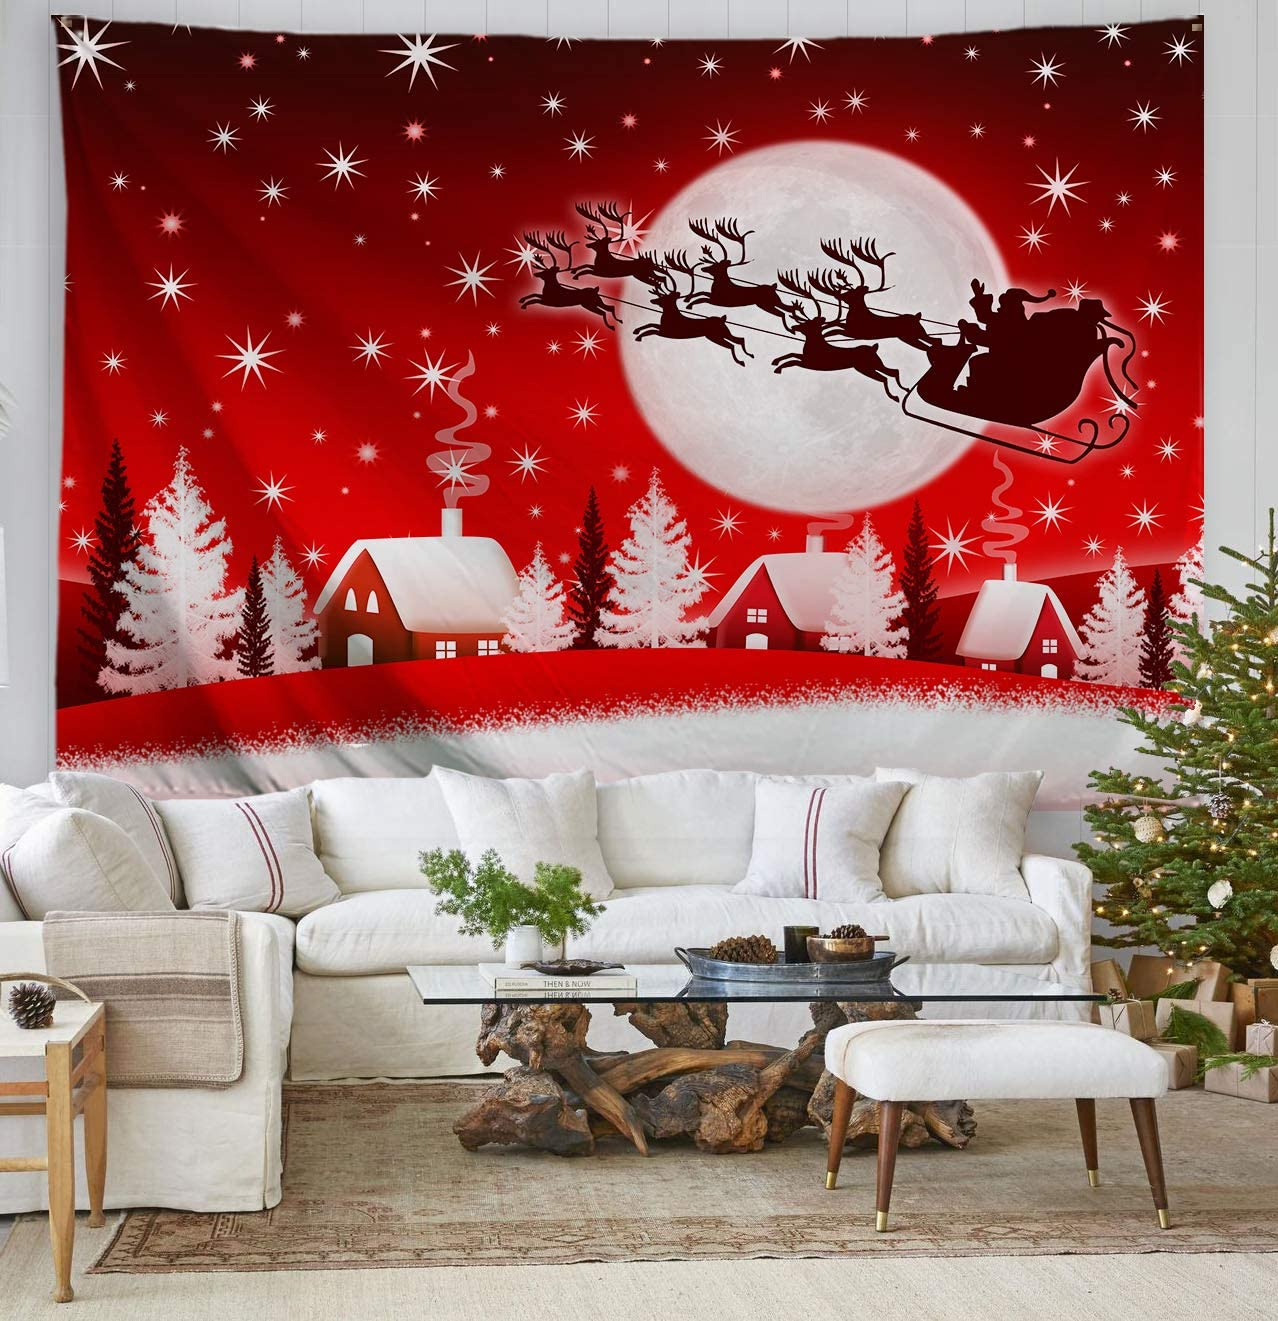 ORTIGIA Christmas Tapestry Wall Hanging Home Decor,Elk Pulling Sleigh and Santa Claus,Tapestry for Bedroom,Kids Room,Living Room,Dorm Polyester Fabric Needles Included- 90 W x 71 L-Red Moon